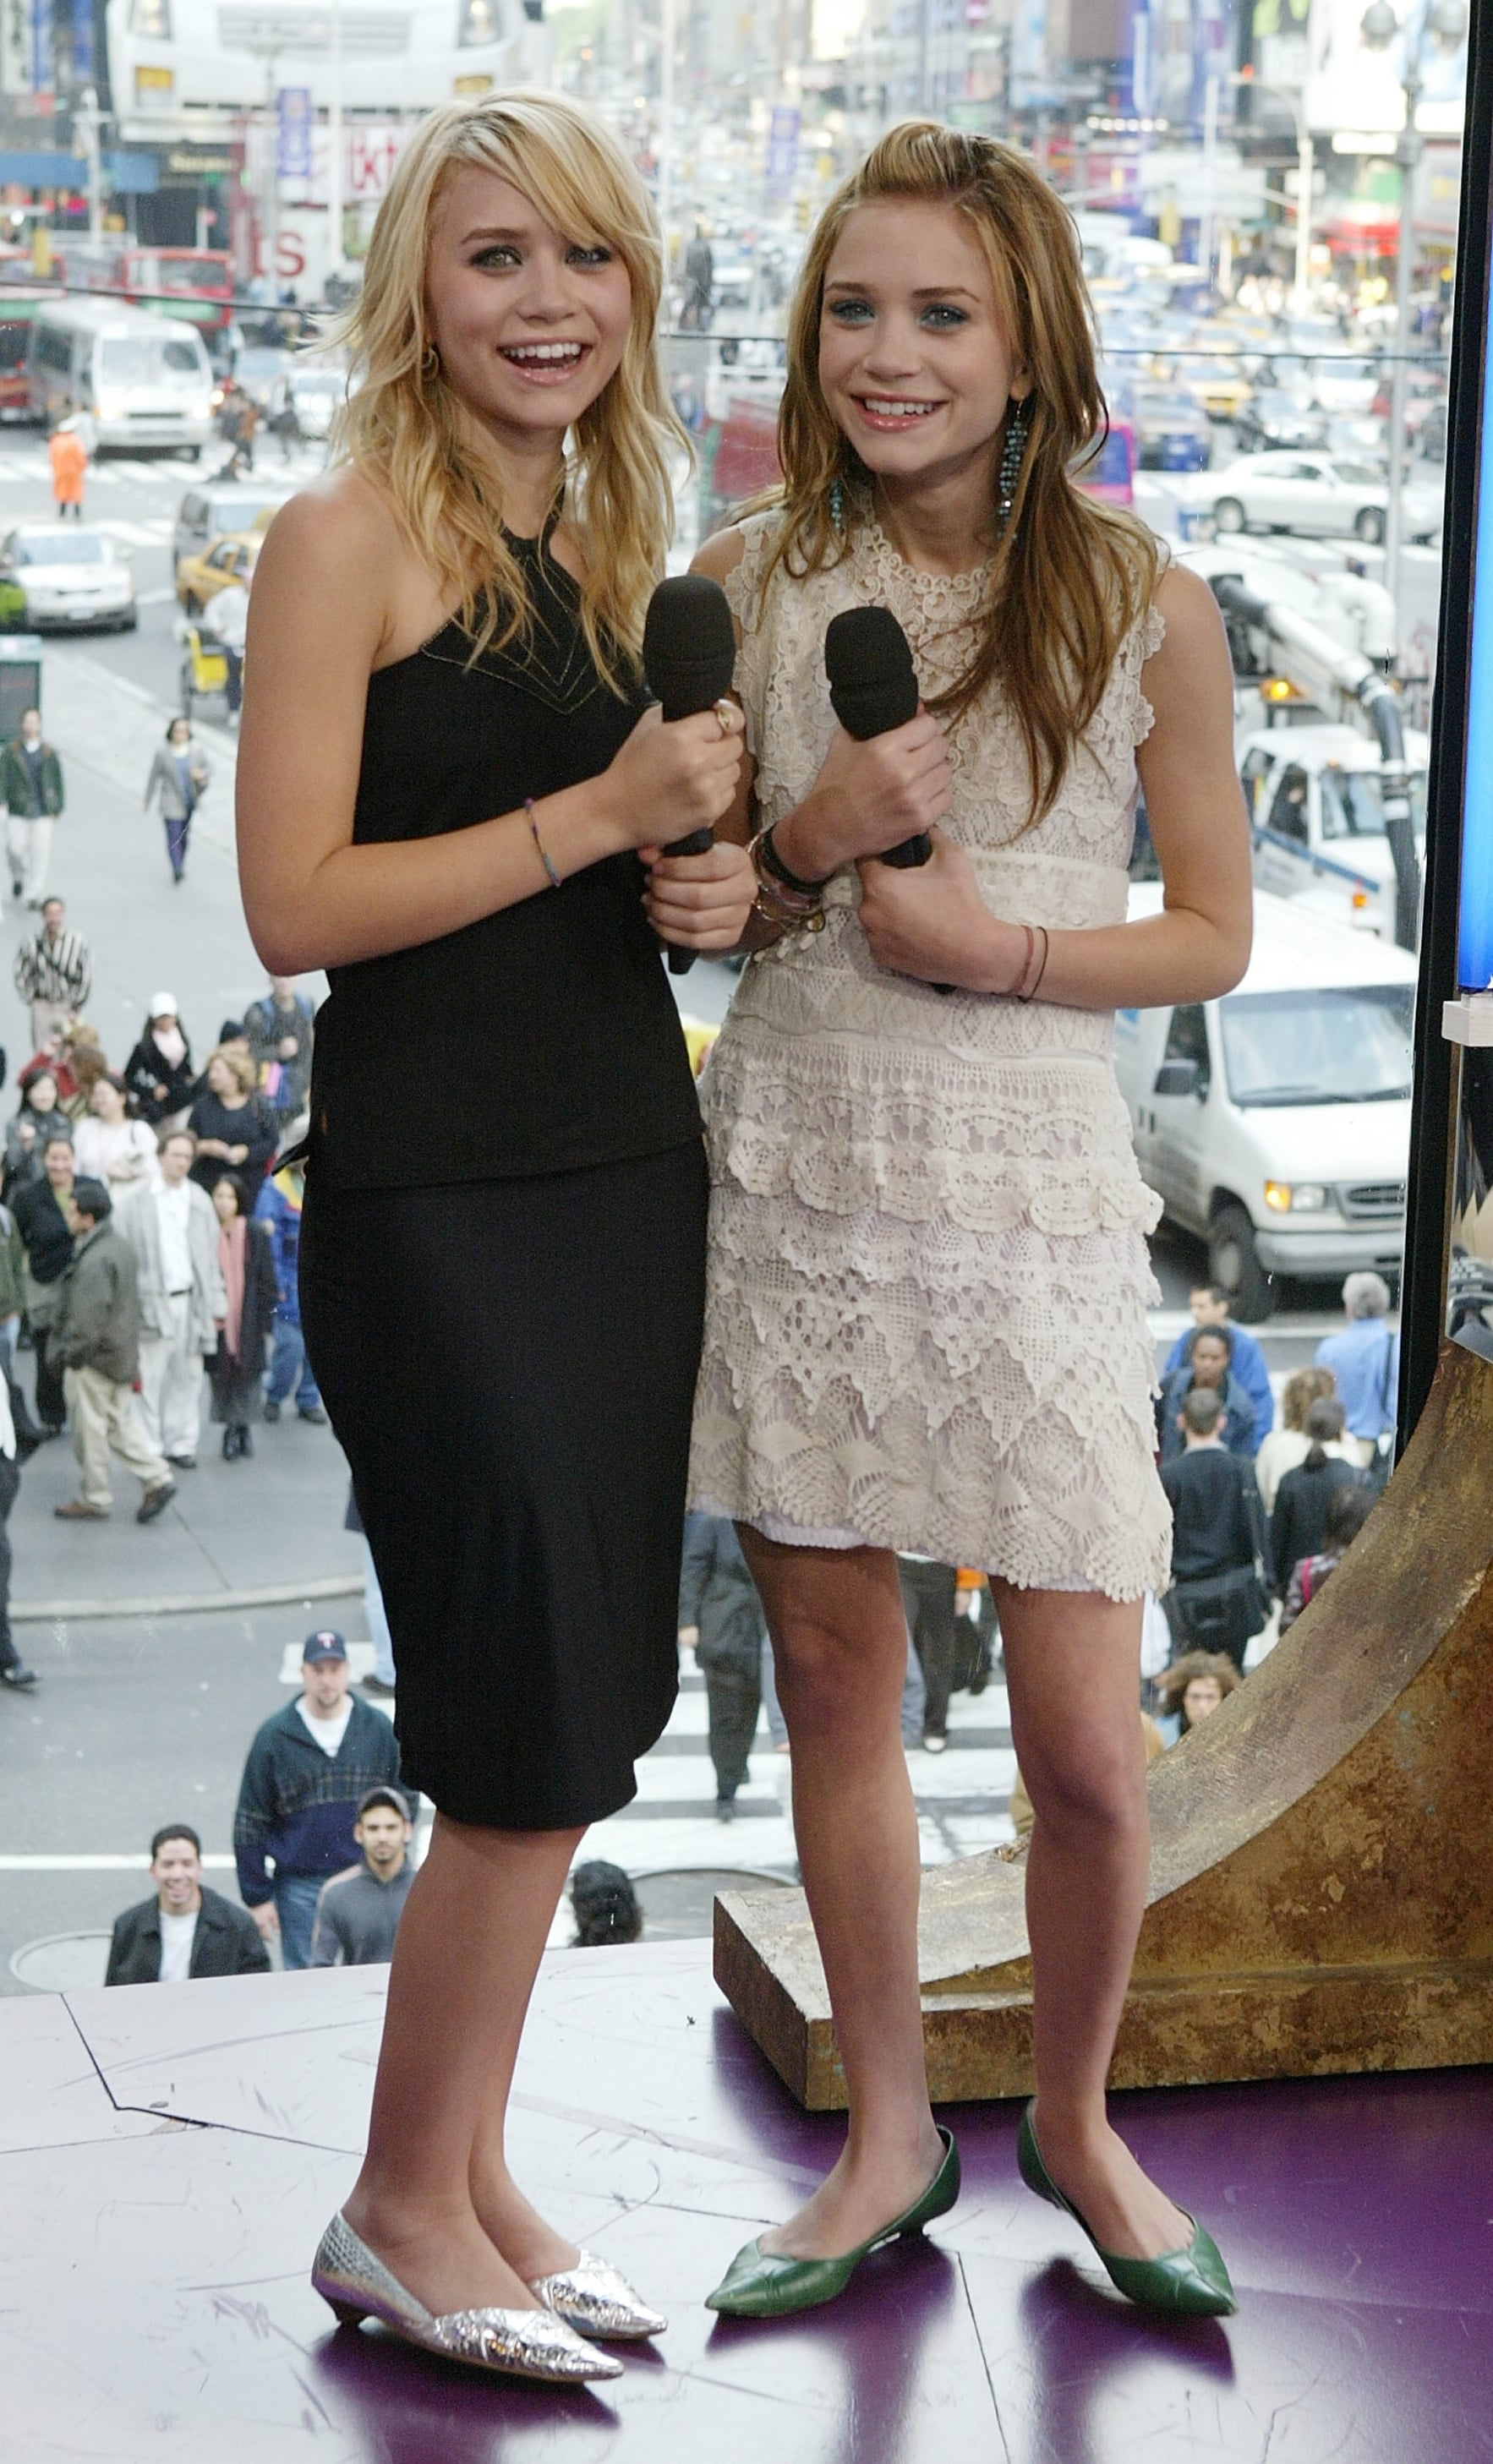 Twinning combo: The girls paired feminine dresses with pointed kitten heels while visiting MTV's TRL studio in May 2004.  Ashley hammed it up in a black body-con halter and silver metallic kitten heels. Mary-Kate  was all smiles in a cream lace sheath and green pointed kitten heels.